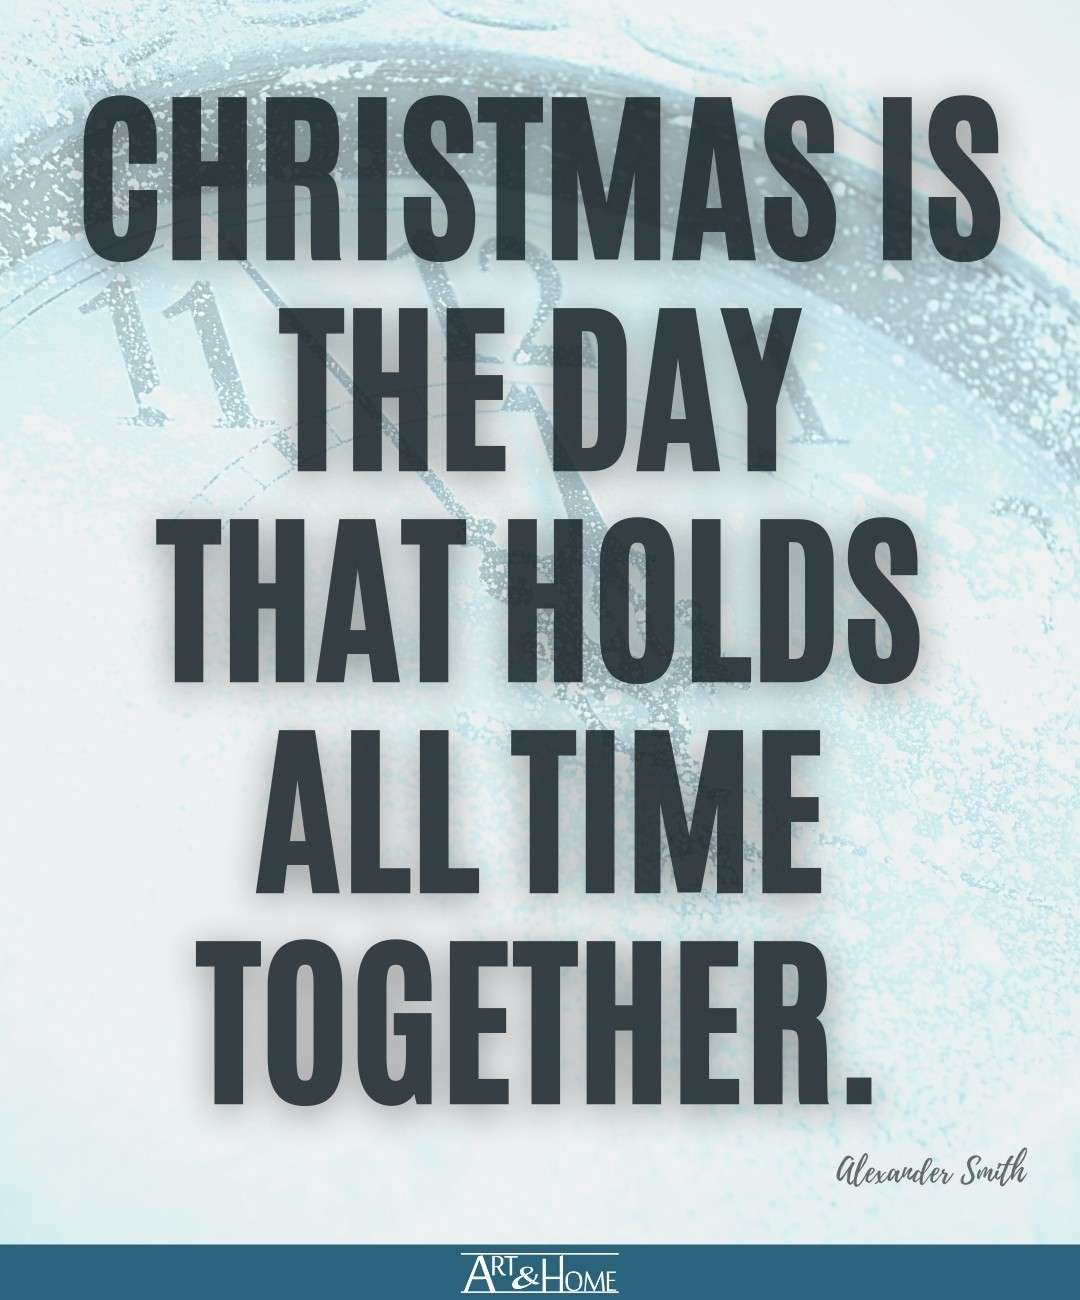 Alexander Smith Quote About Christmas